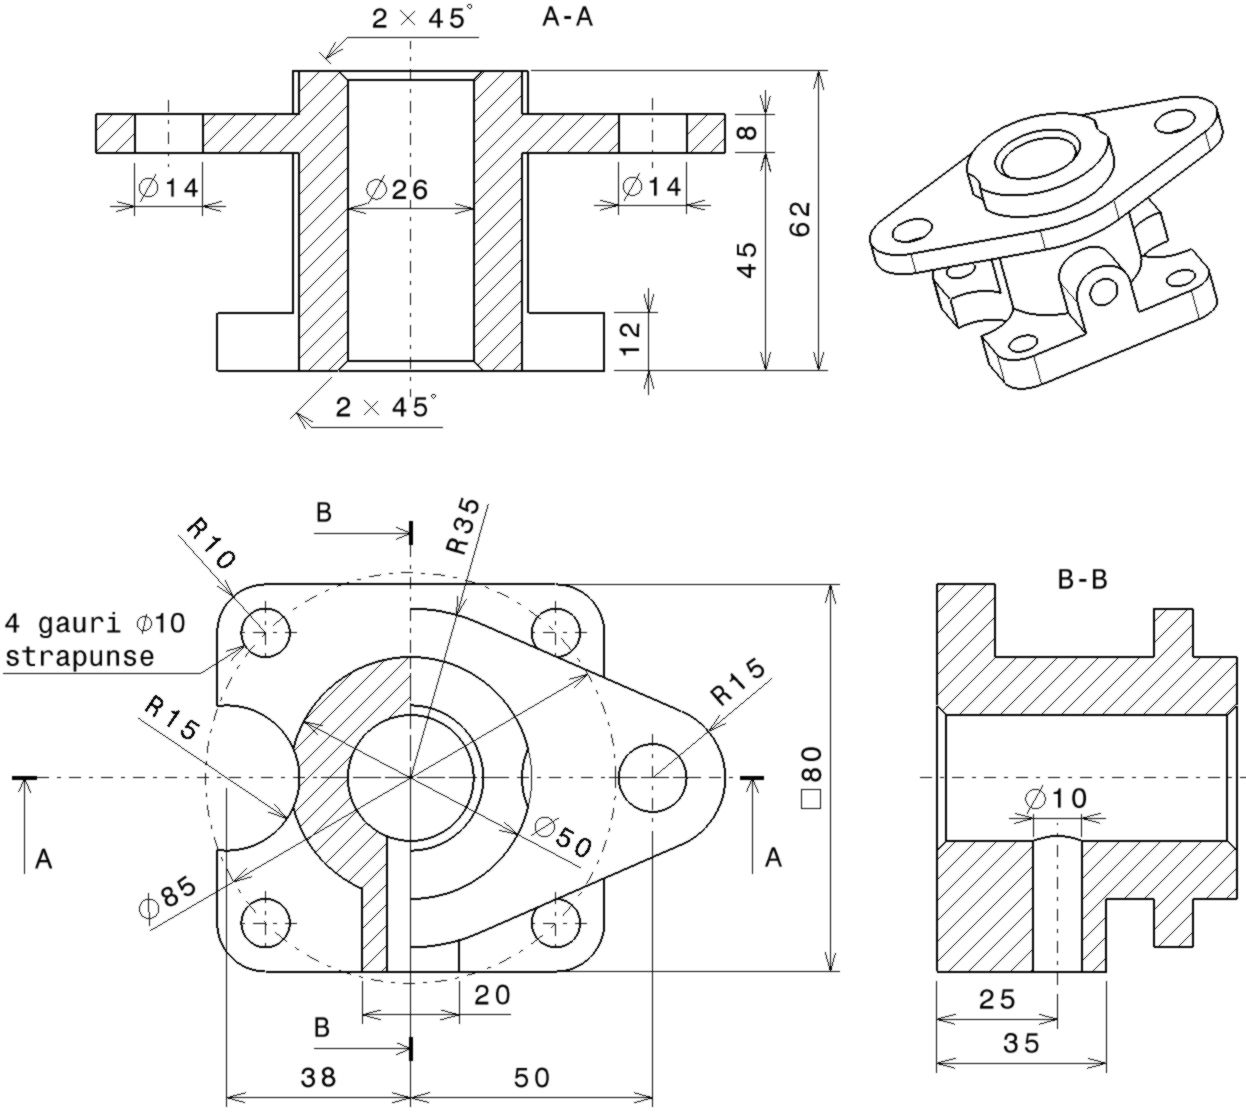 How To Create A Mechanical Part Using Catia Part Design